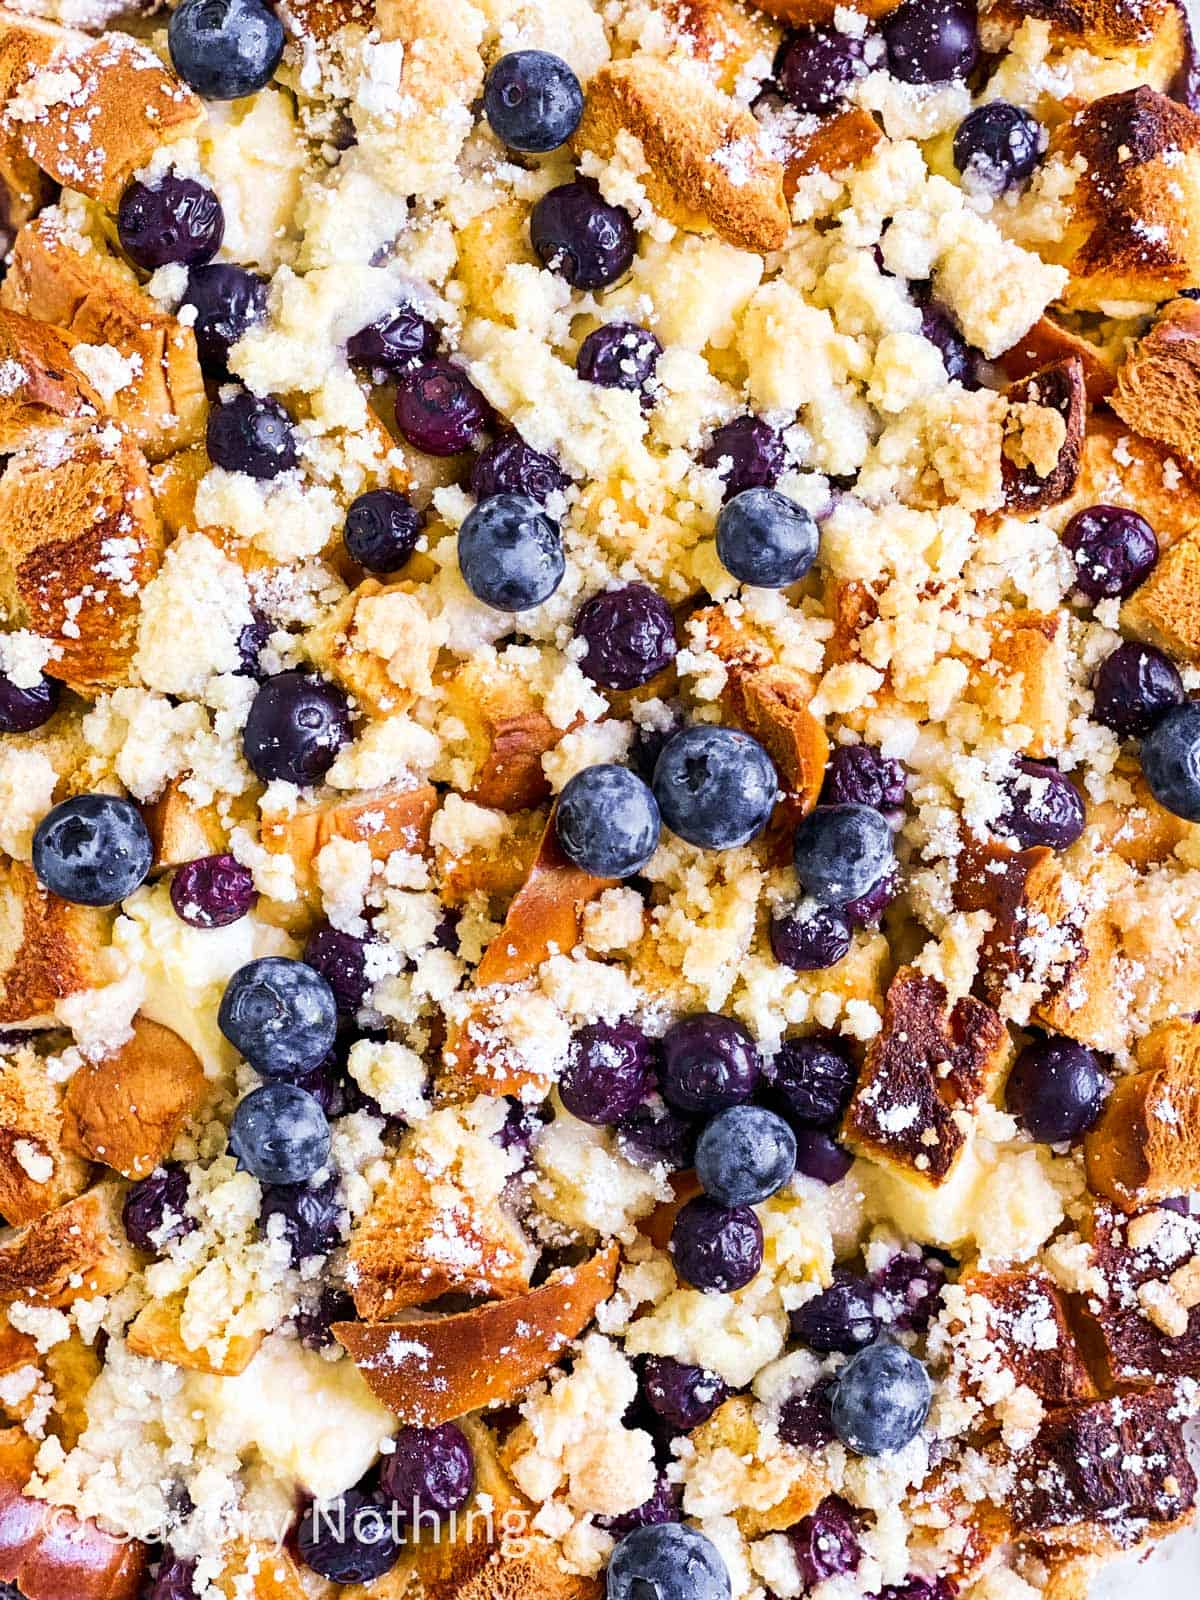 close up photo of baked blueberry French toast casserole with streusel topping